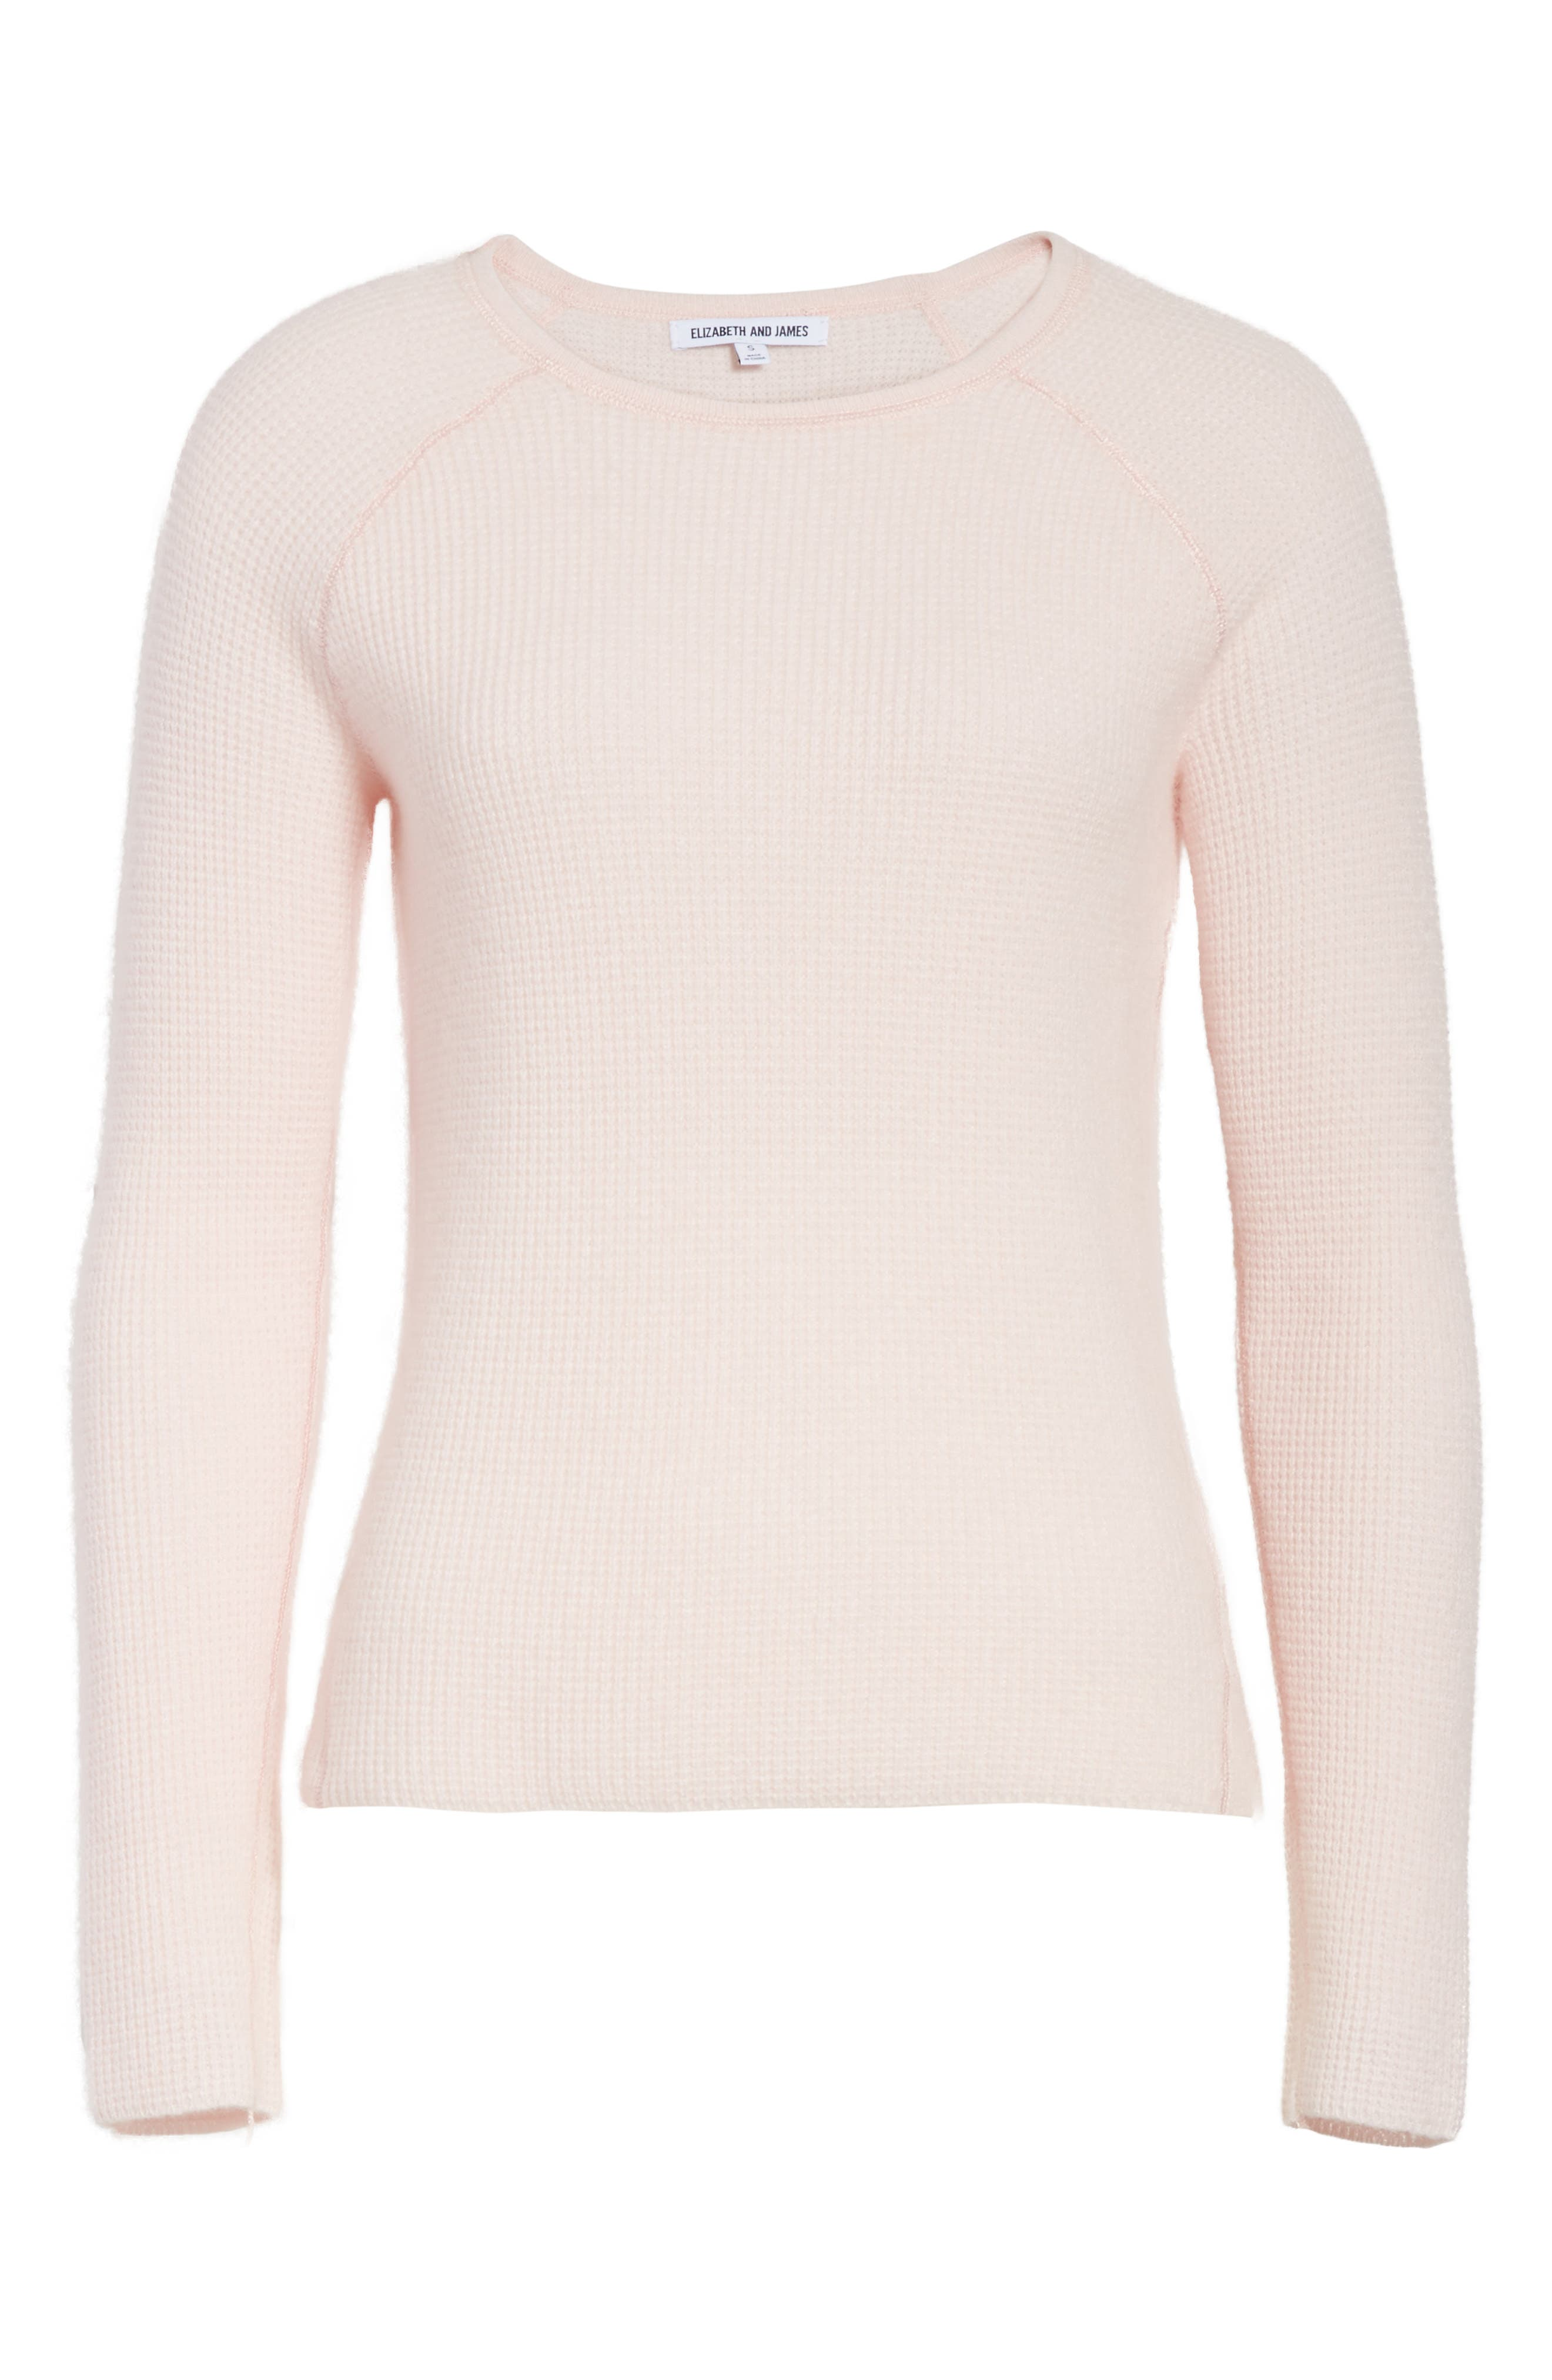 Karina Waffle Knit Cashmere Sweater,                             Alternate thumbnail 6, color,                             684